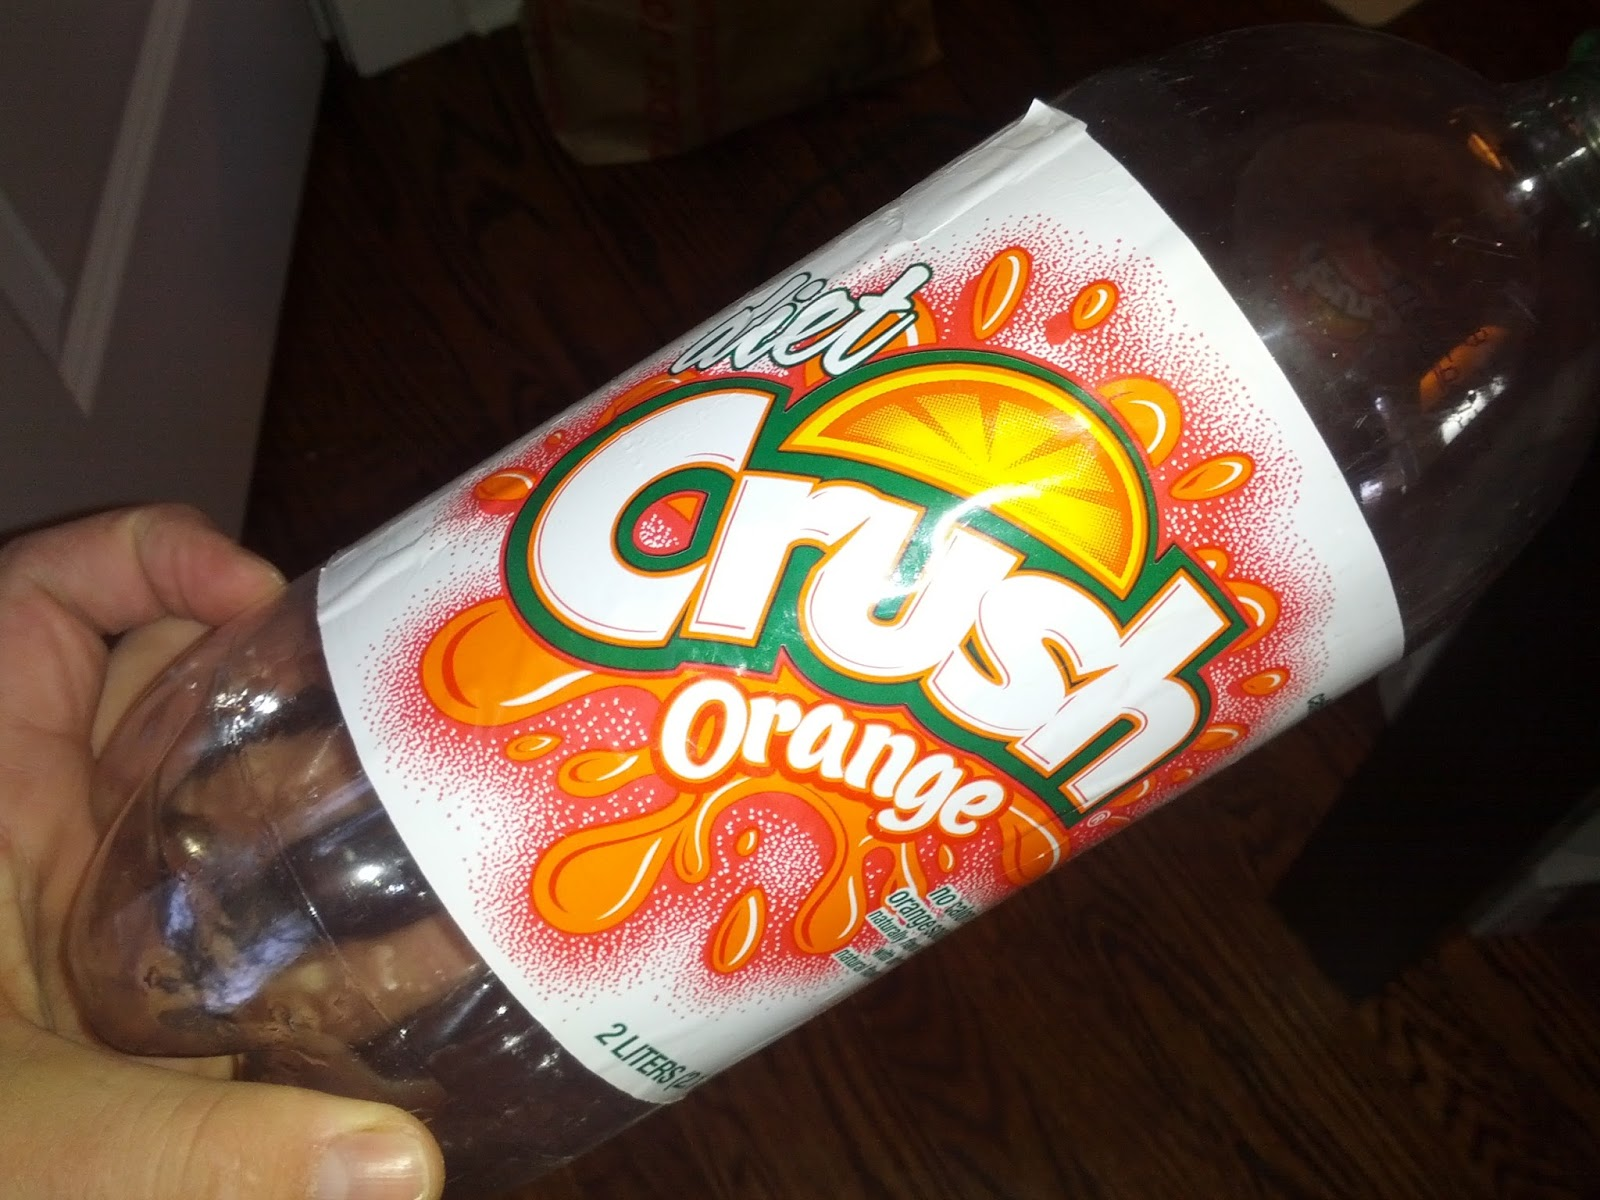 orange crush essay Yiyun li orange essay crush - essay: s53 of the adults with incapacity (s) act 2000 allows the judiciary to interfere with the personality right of protected individual.